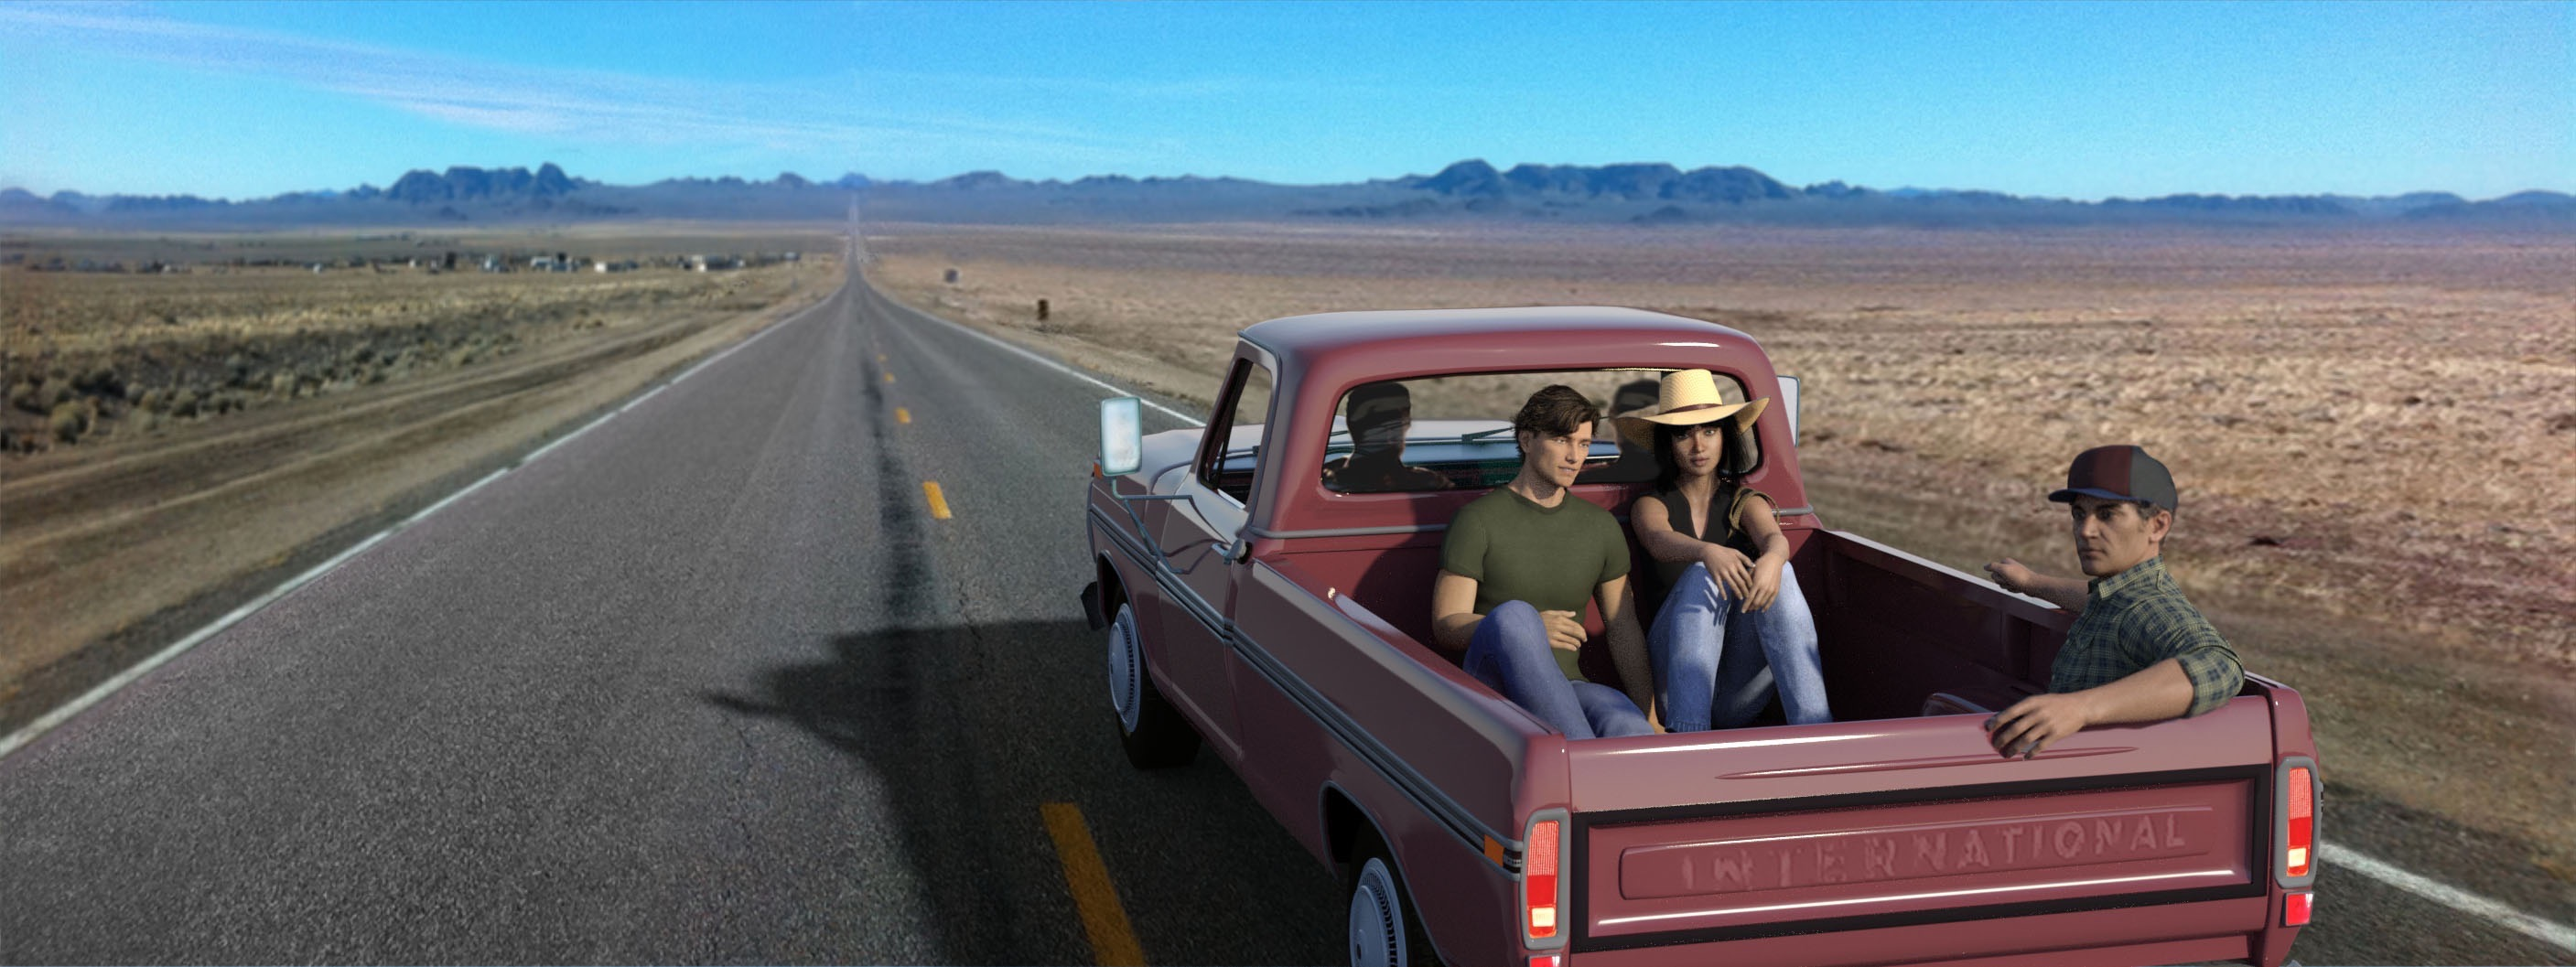 Hitchhiking to the desert